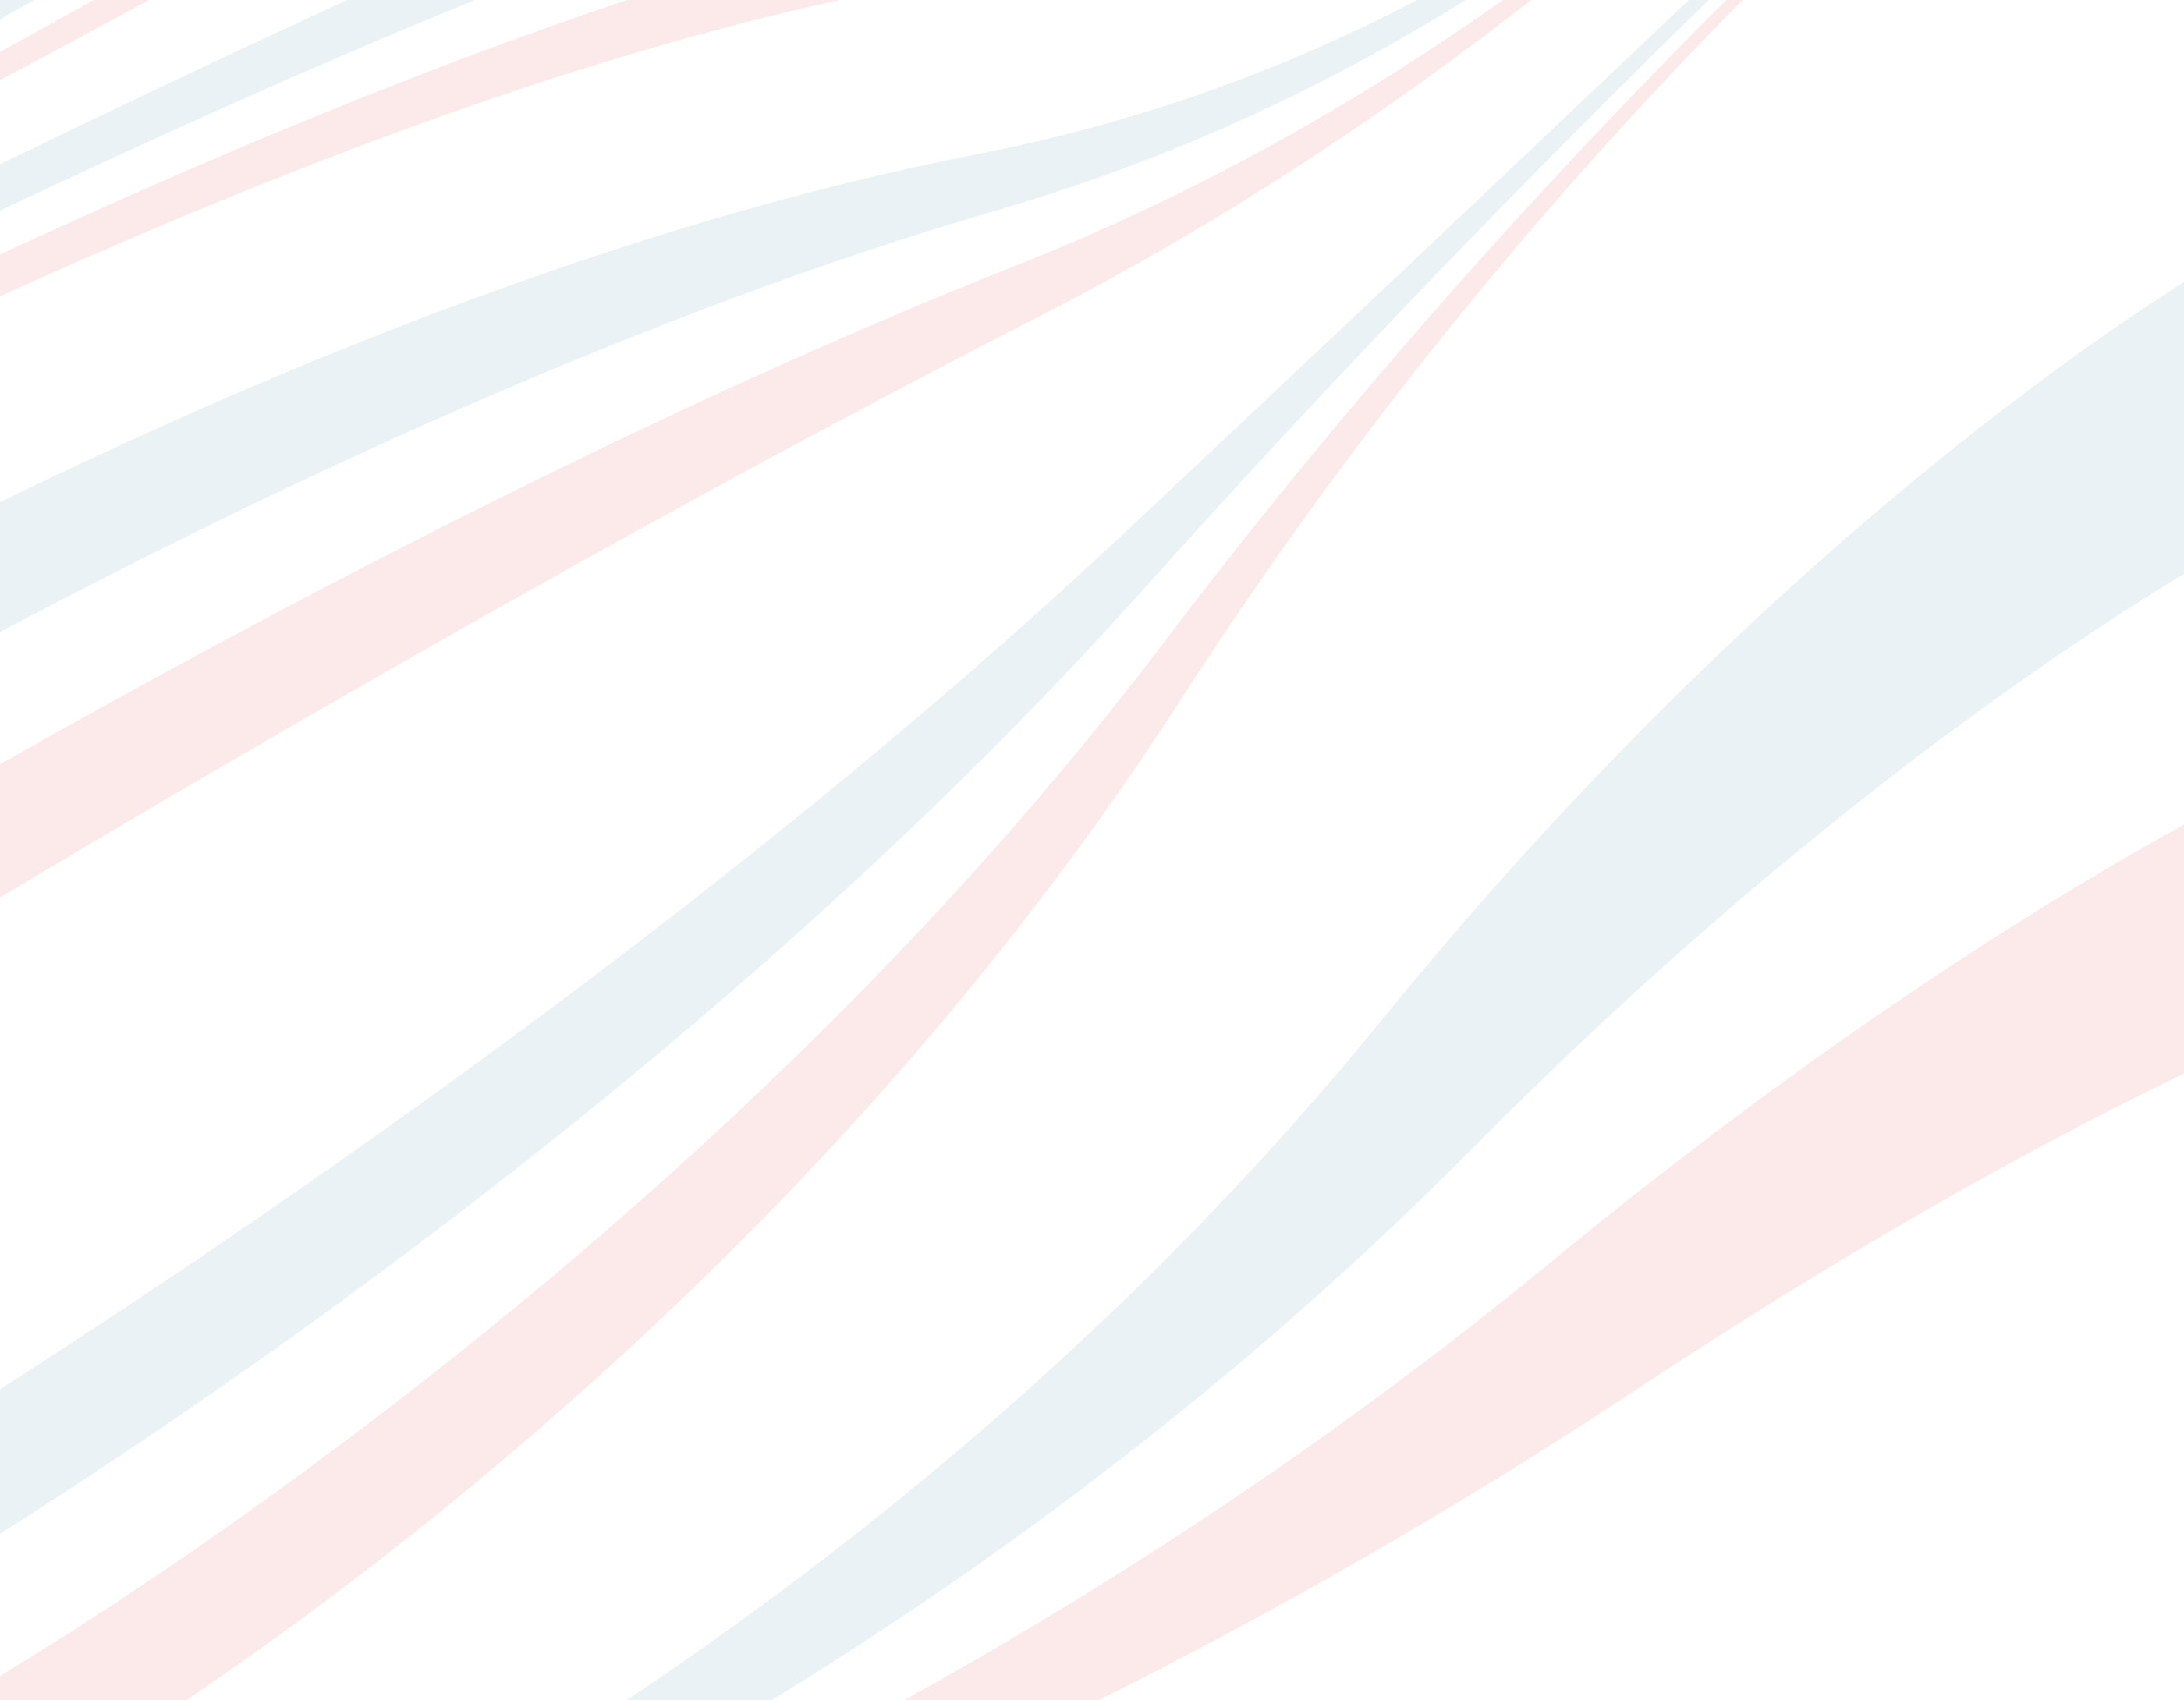 Blue and red ribbons on a white background